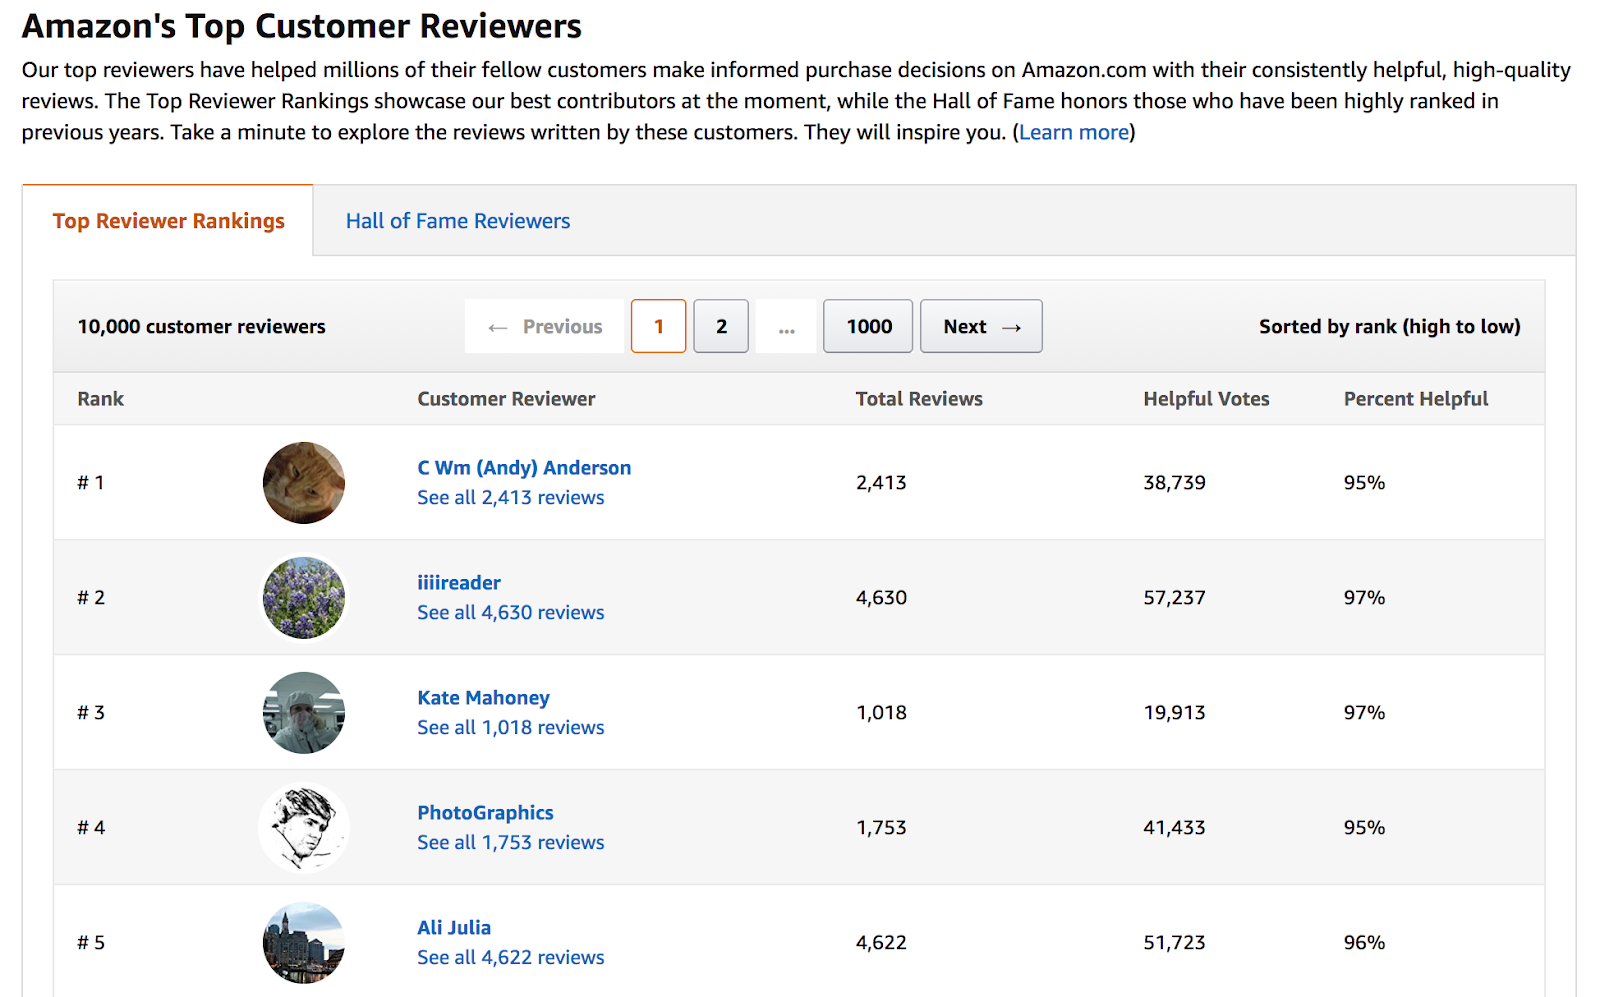 Amazon's Top Customer Reviewers List